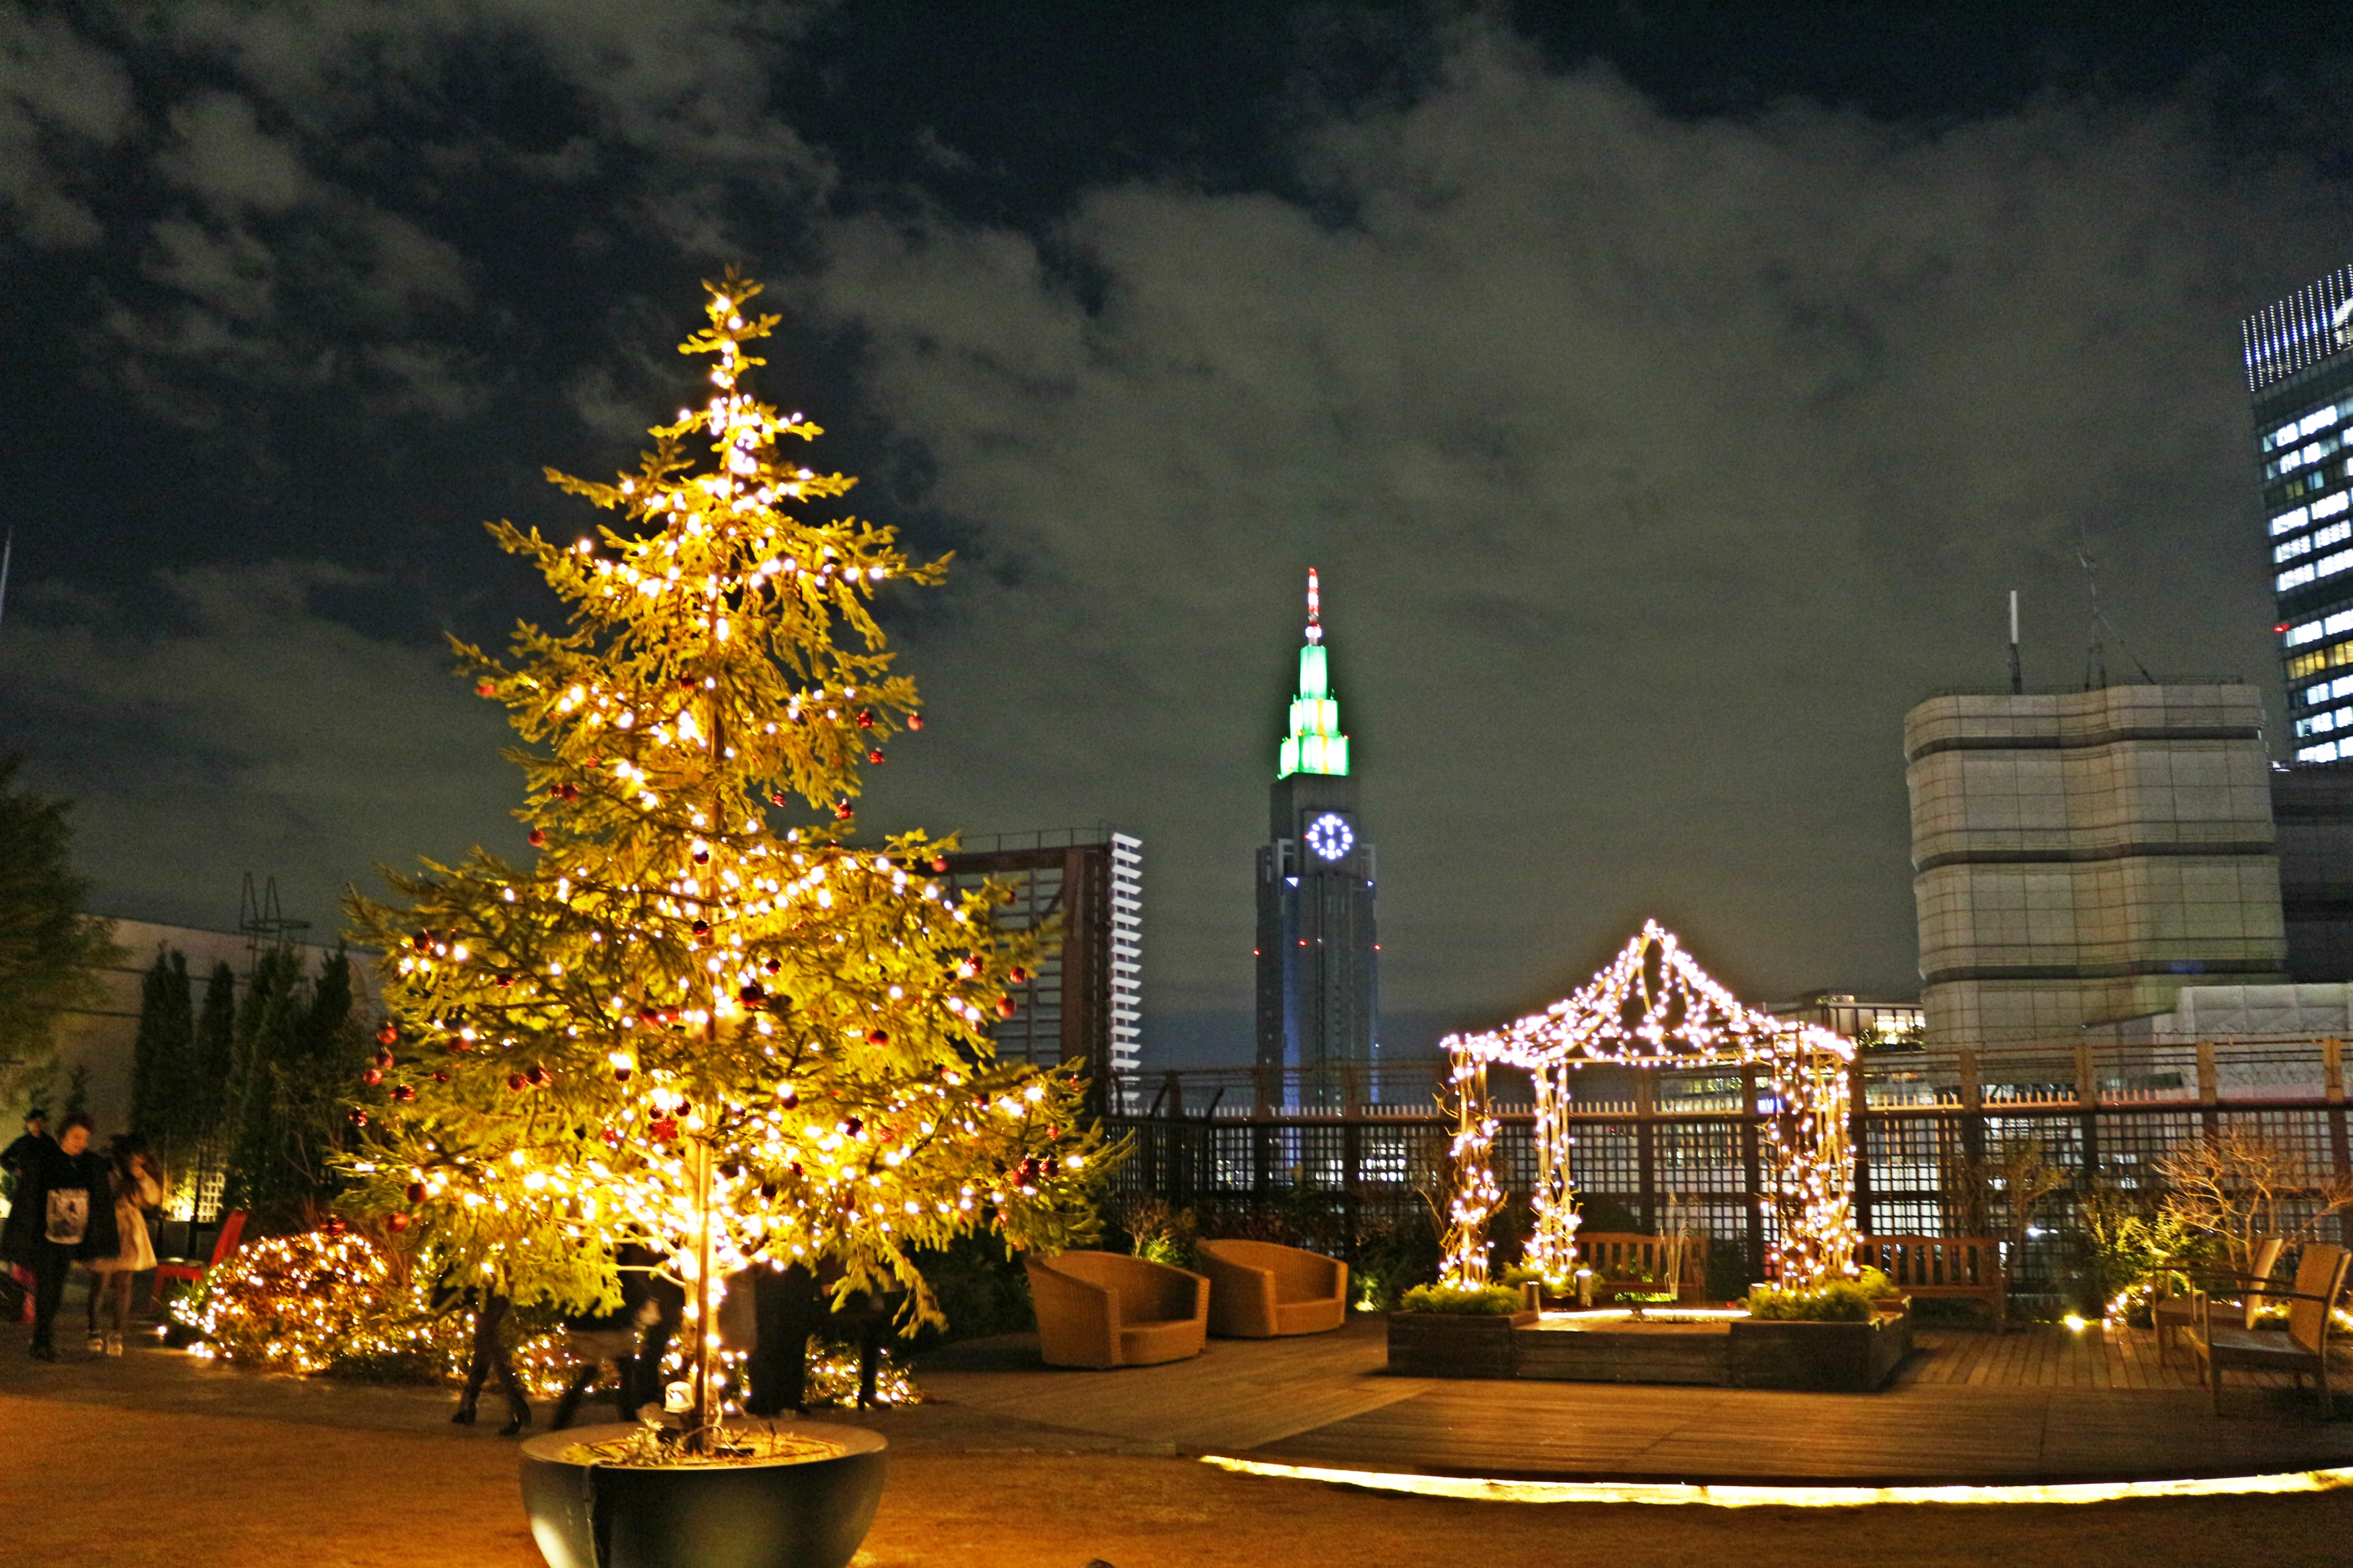 Marui Main Building Rooftop Garden Q-COURT Entry : Free Garden opening  time: 11:00-20:00 (Illumination starts from 16:30)